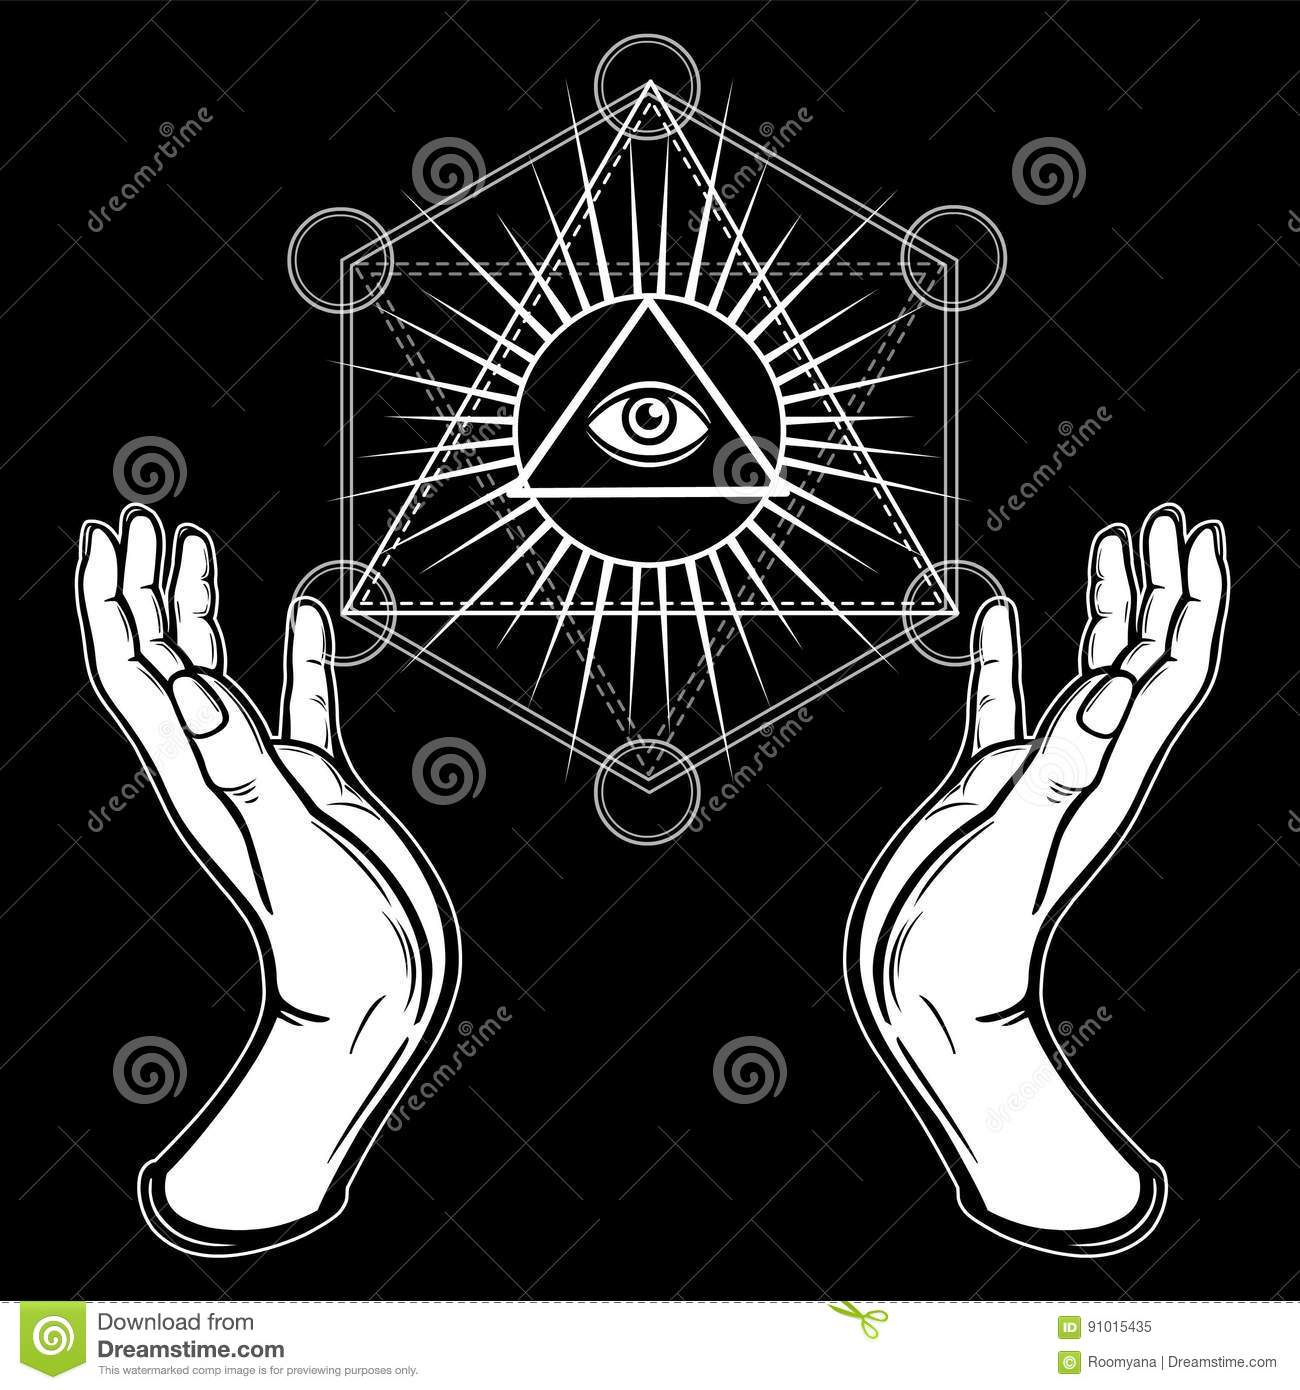 Human hands hold the shining triangle, a providence eye. Sacred geometry, mystical symbol.